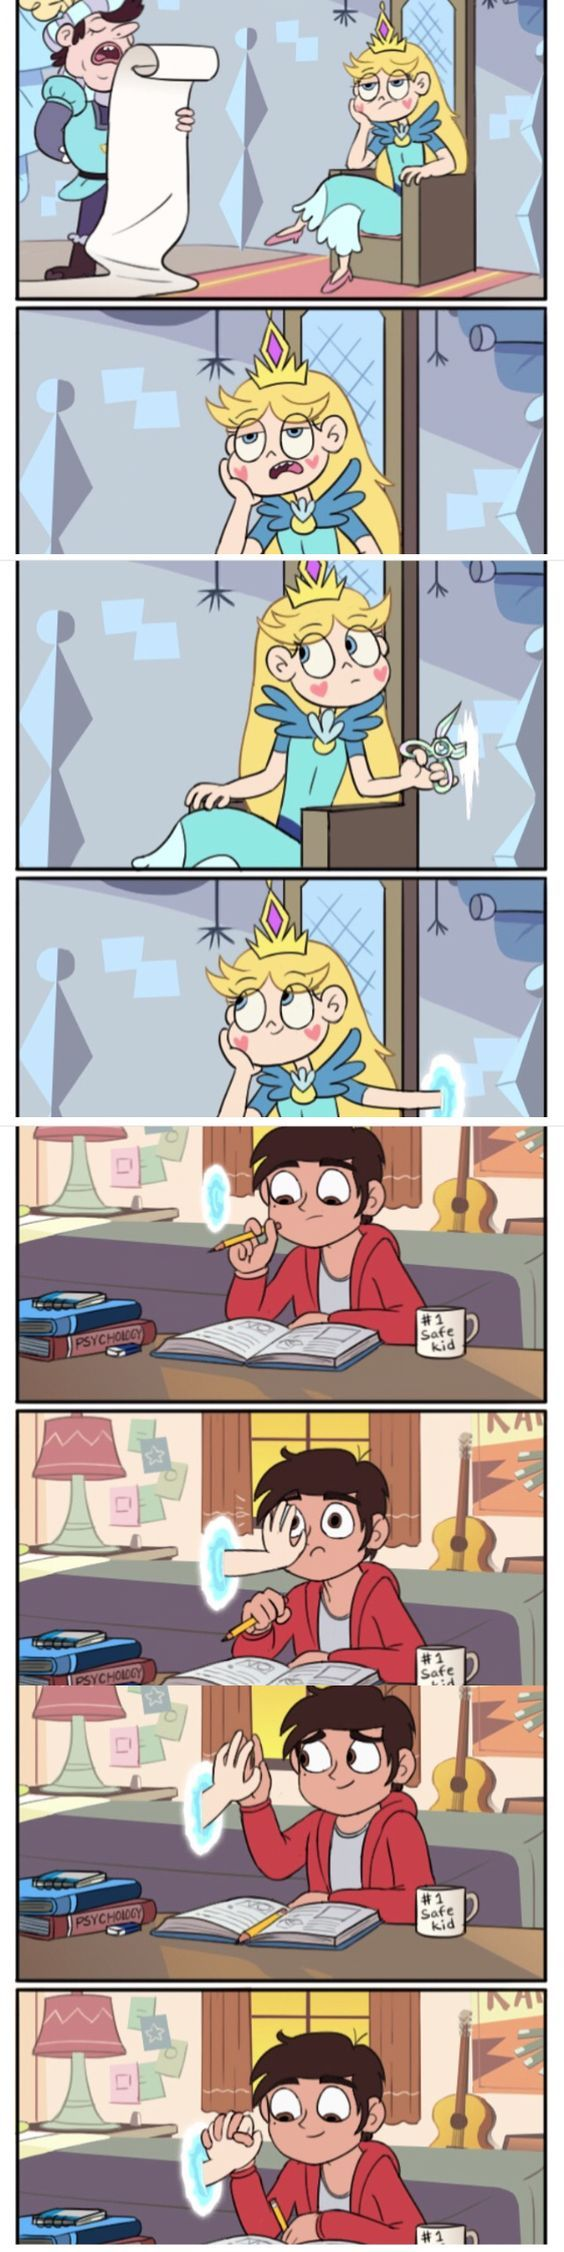 This is possibly the cutest thing I've ever seen Credit to Moringmark |Star vs the Forces of Evil|: